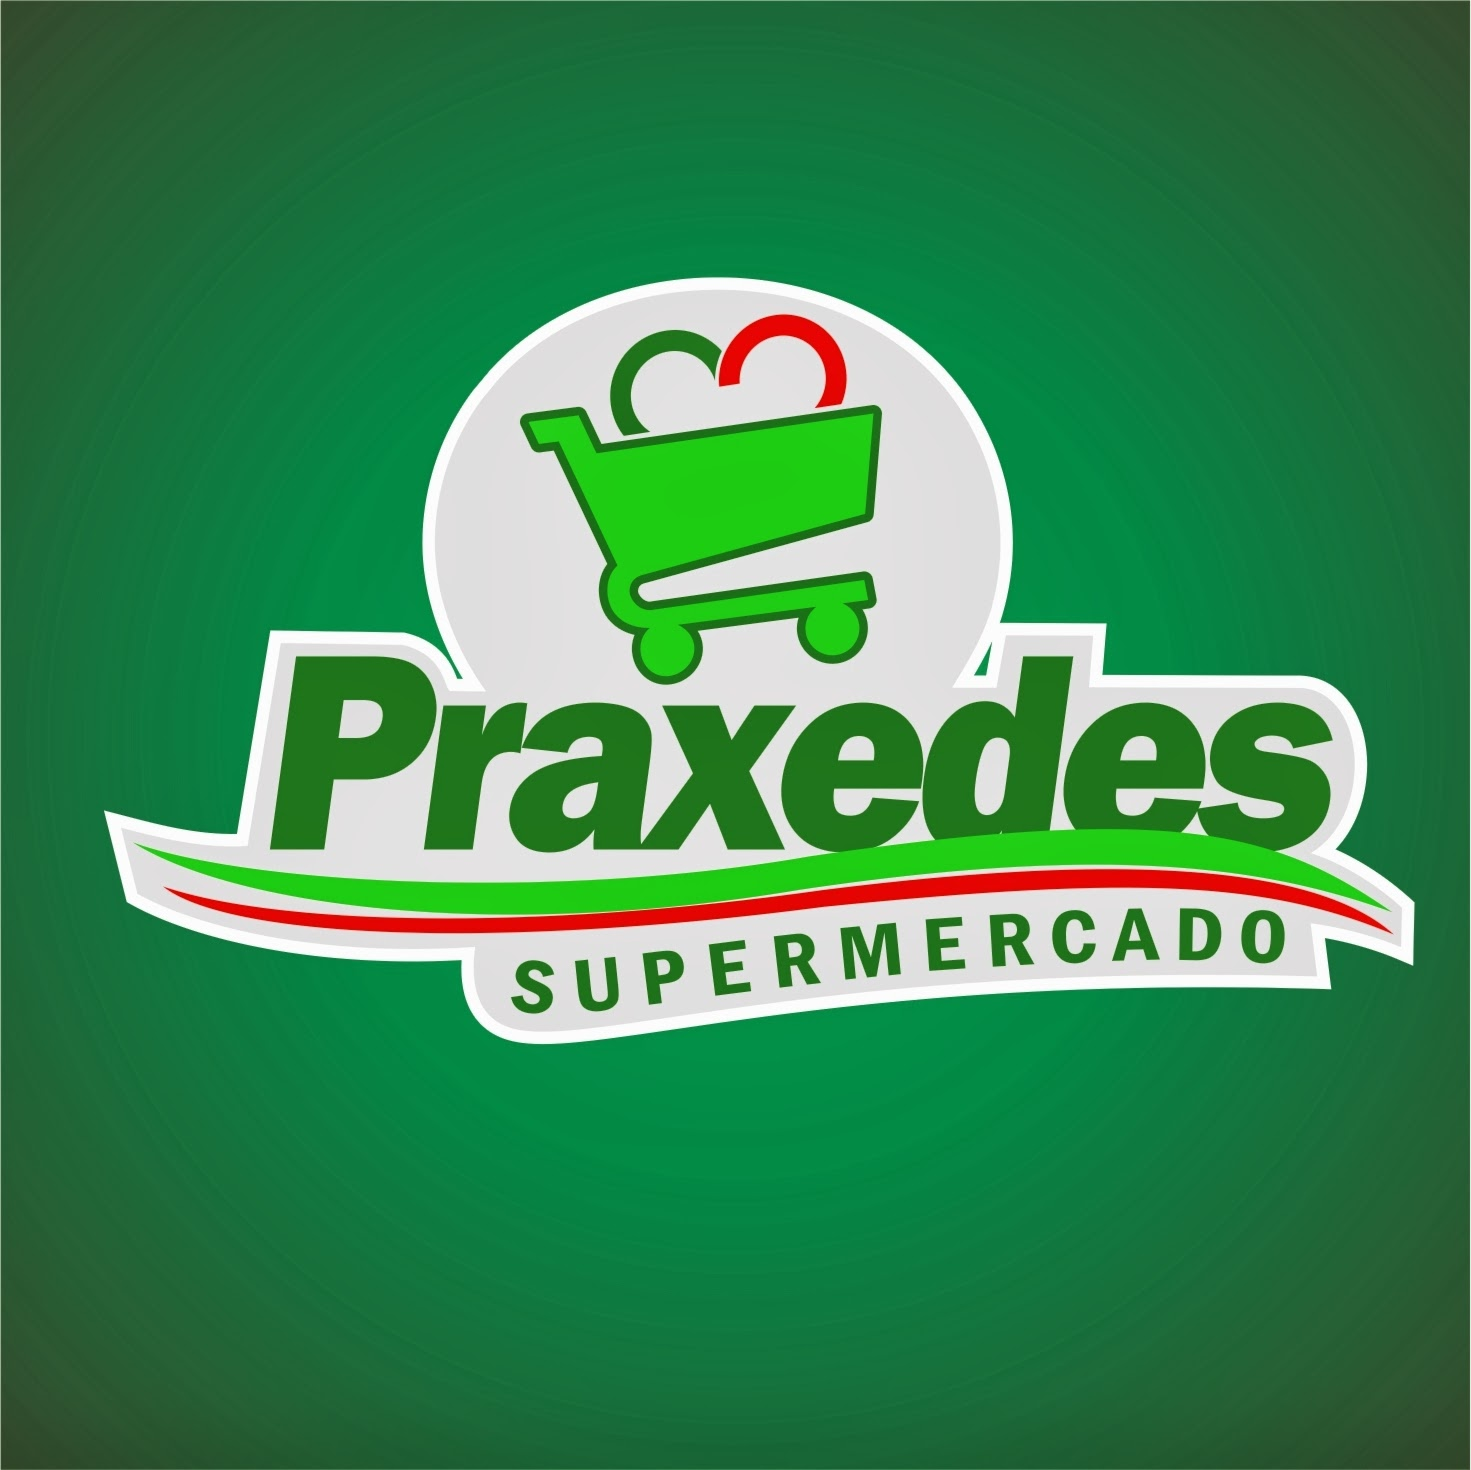 Super Mercado Praxedes.